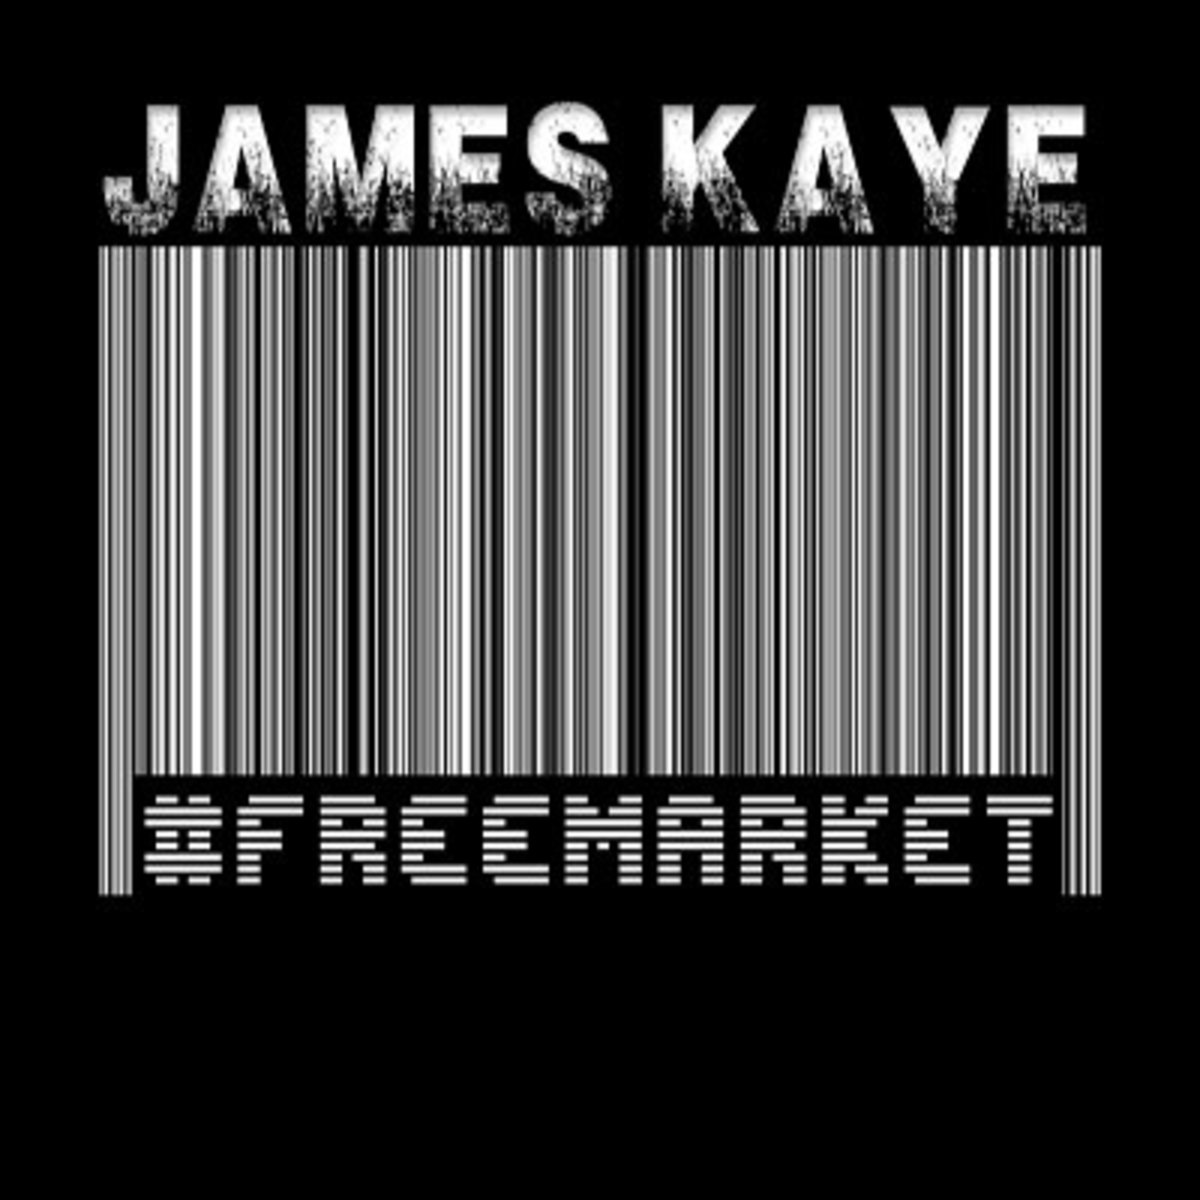 jameskaye-freemarket.jpg